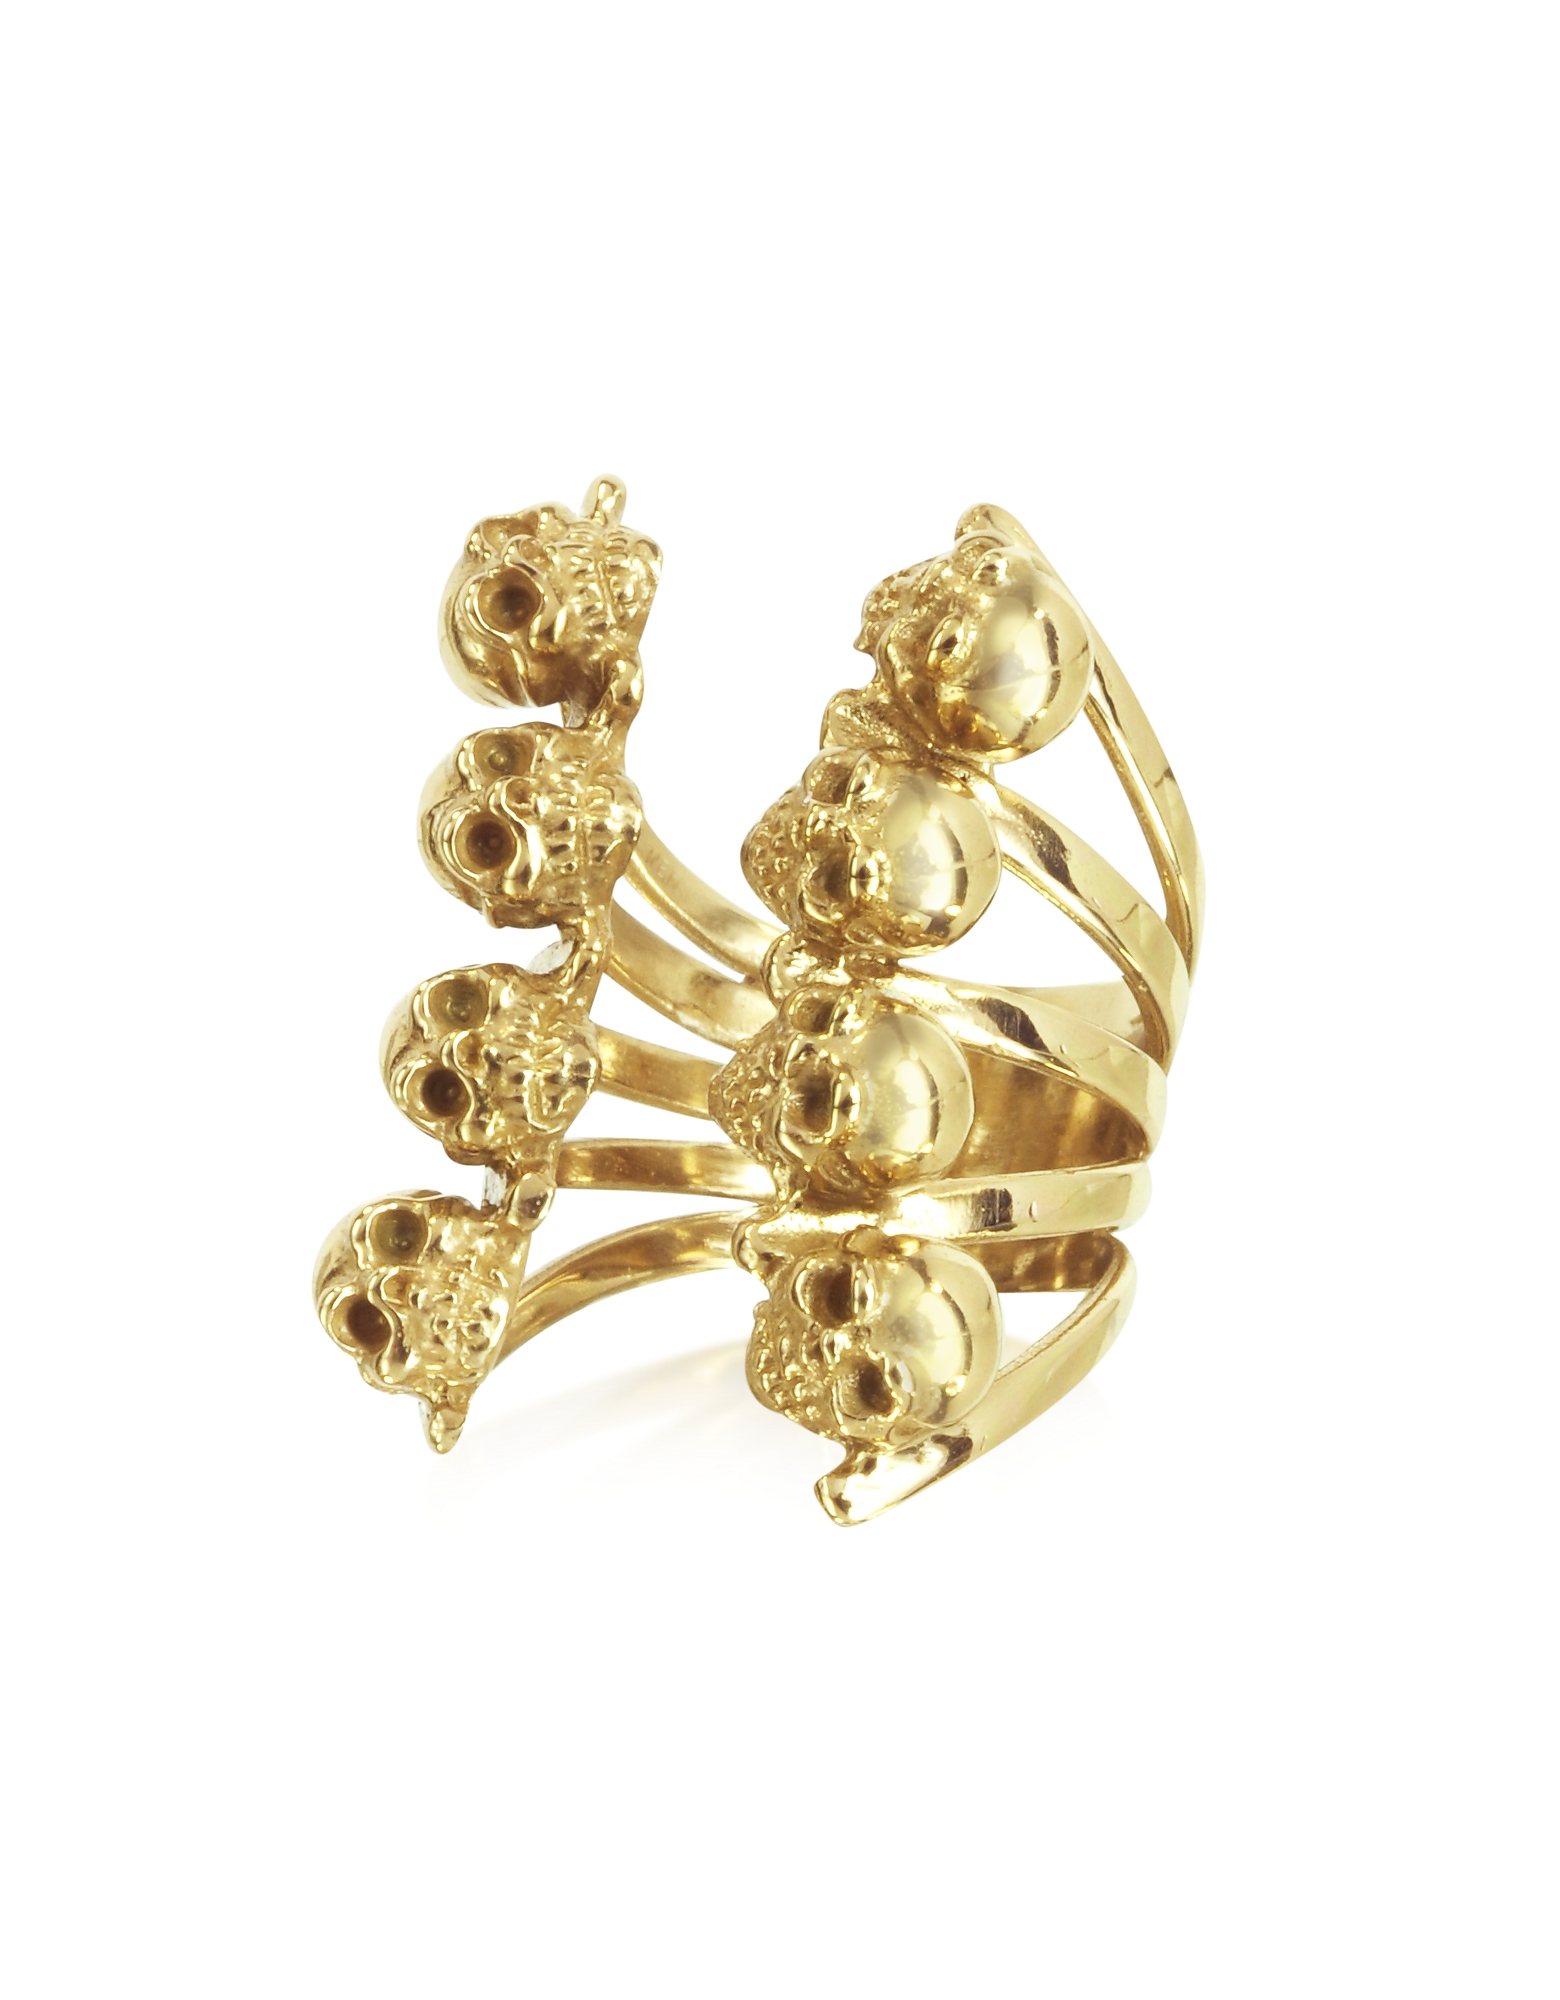 Bernard Delettrez Rings, Golden Skulls Bronze Ring